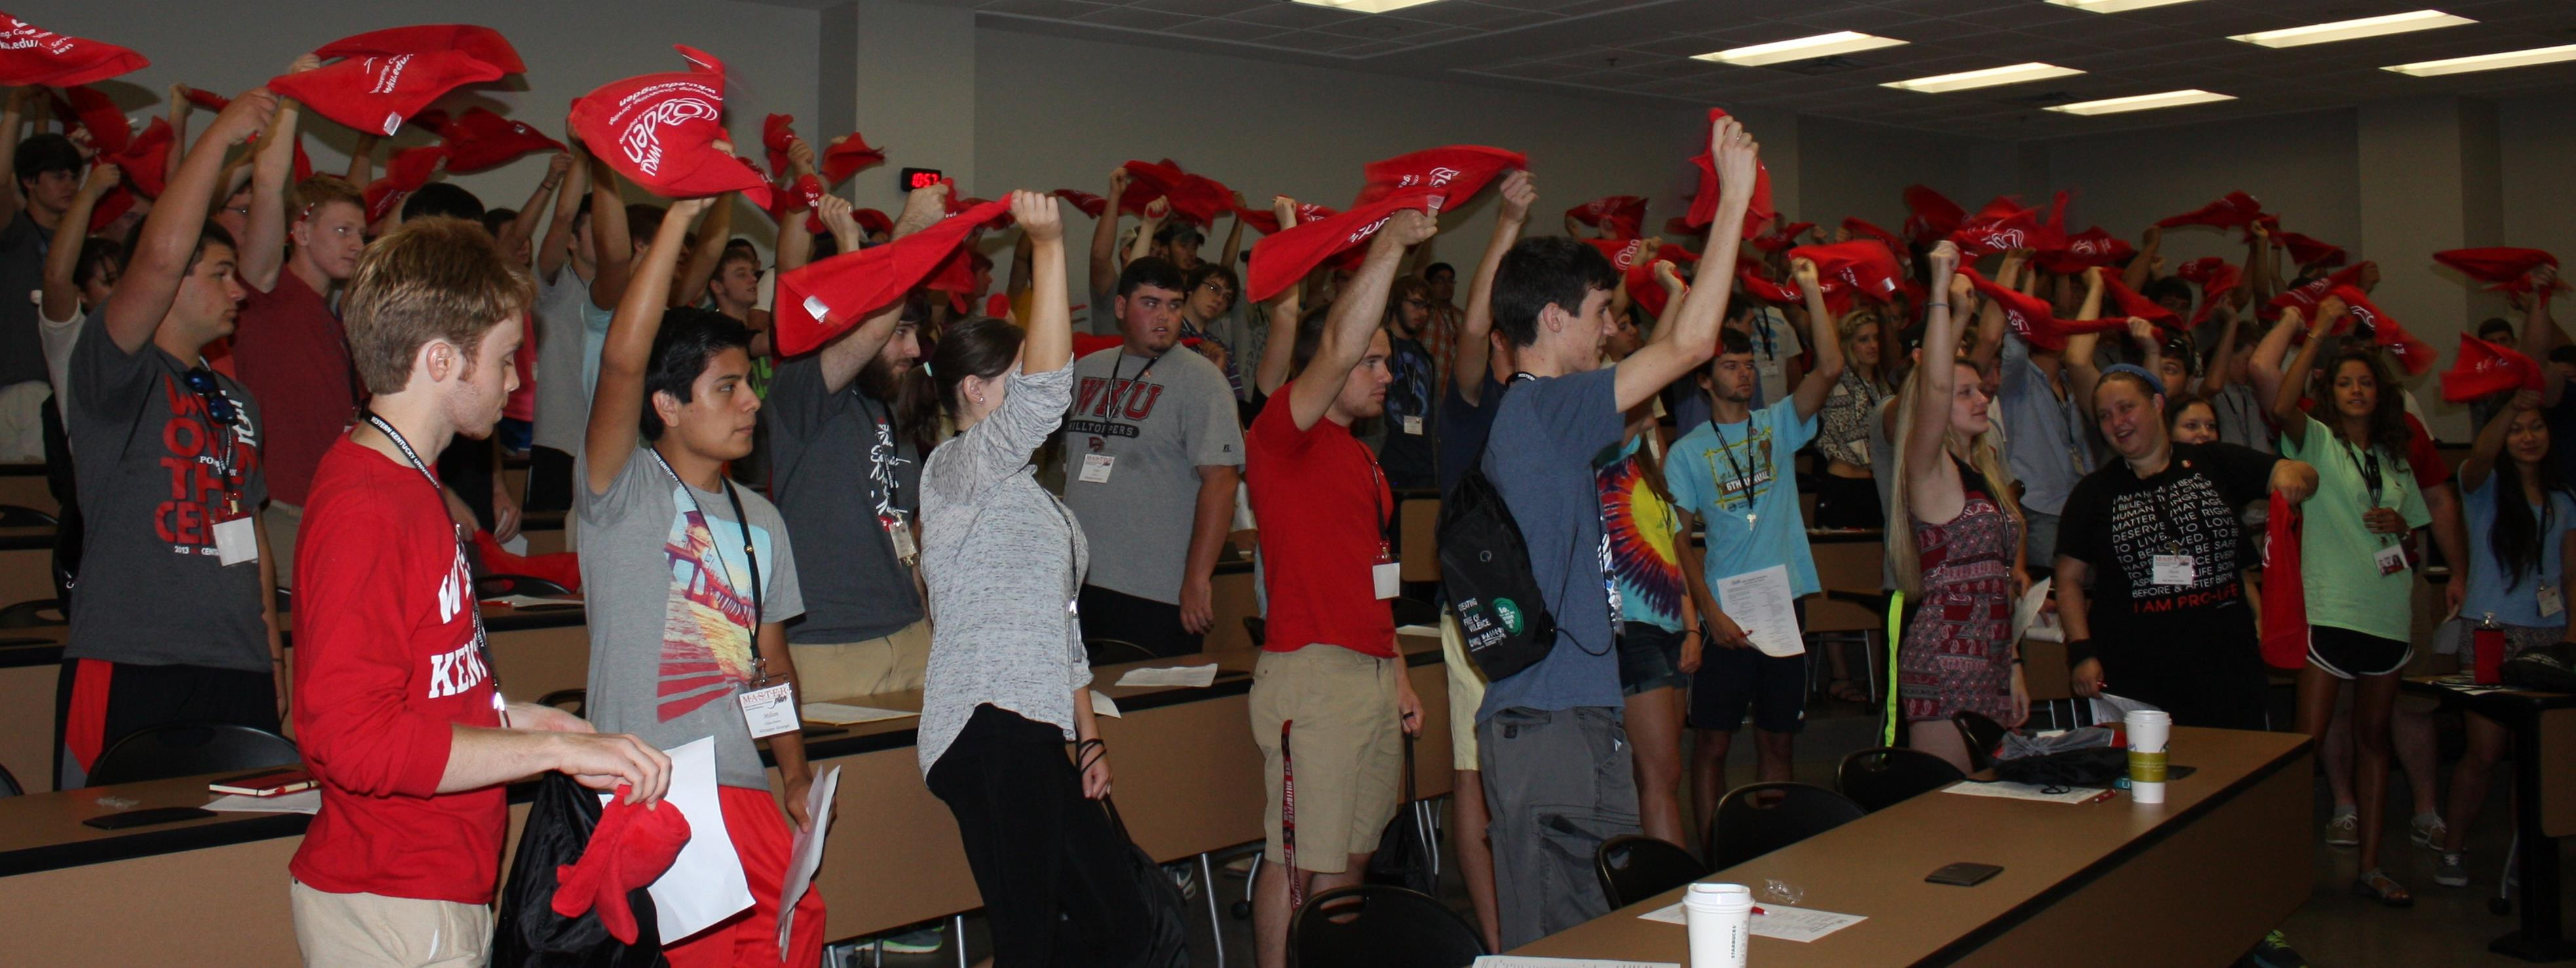 Ogden College welcomed the MASTER Plan students on 8/18/14.